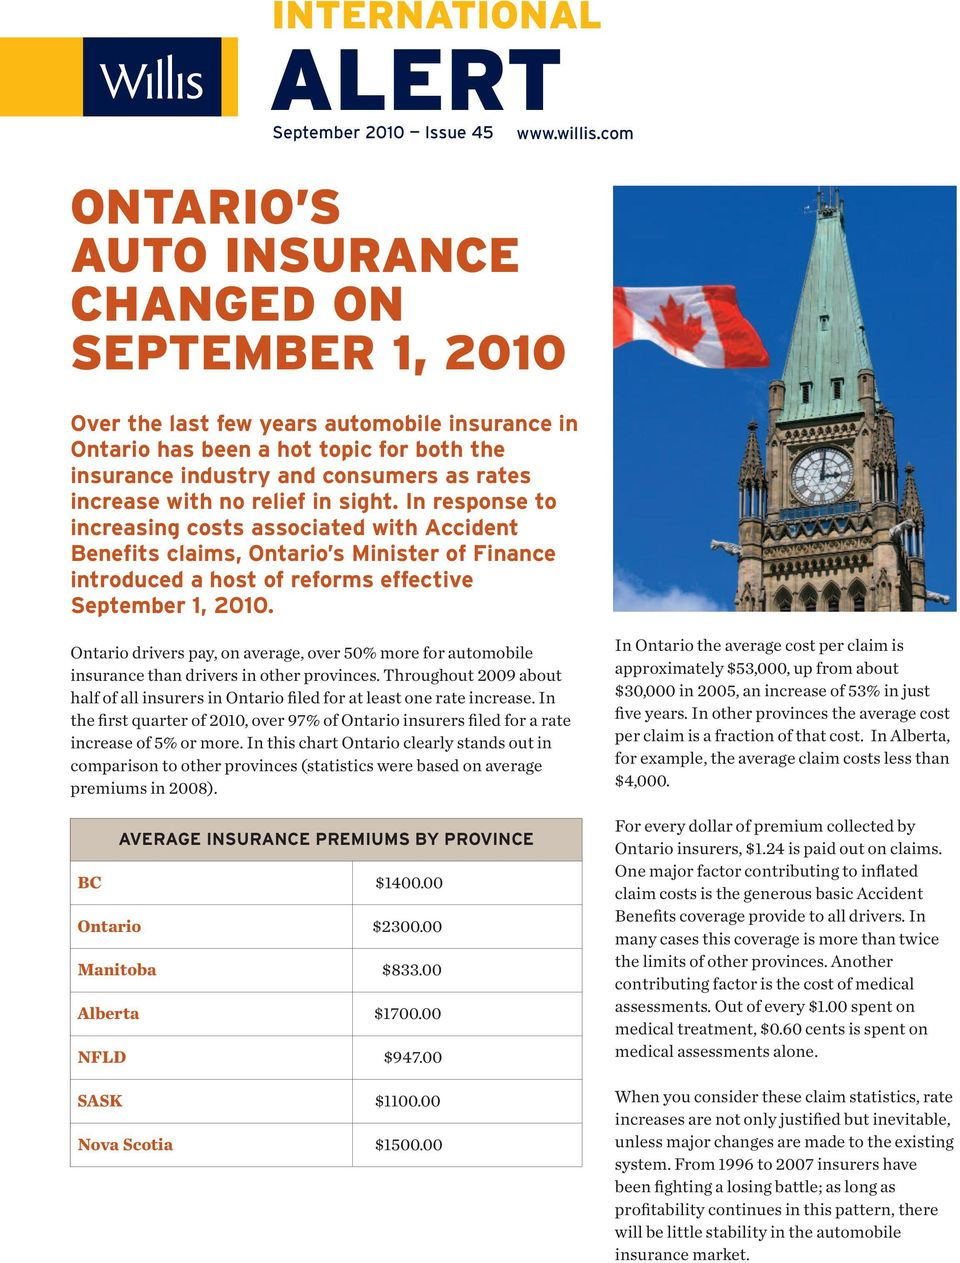 In response to increasing costs associated with Accident Benefits claims, Ontario s Minister of Finance introduced a host of reforms effective September 1, 2010.